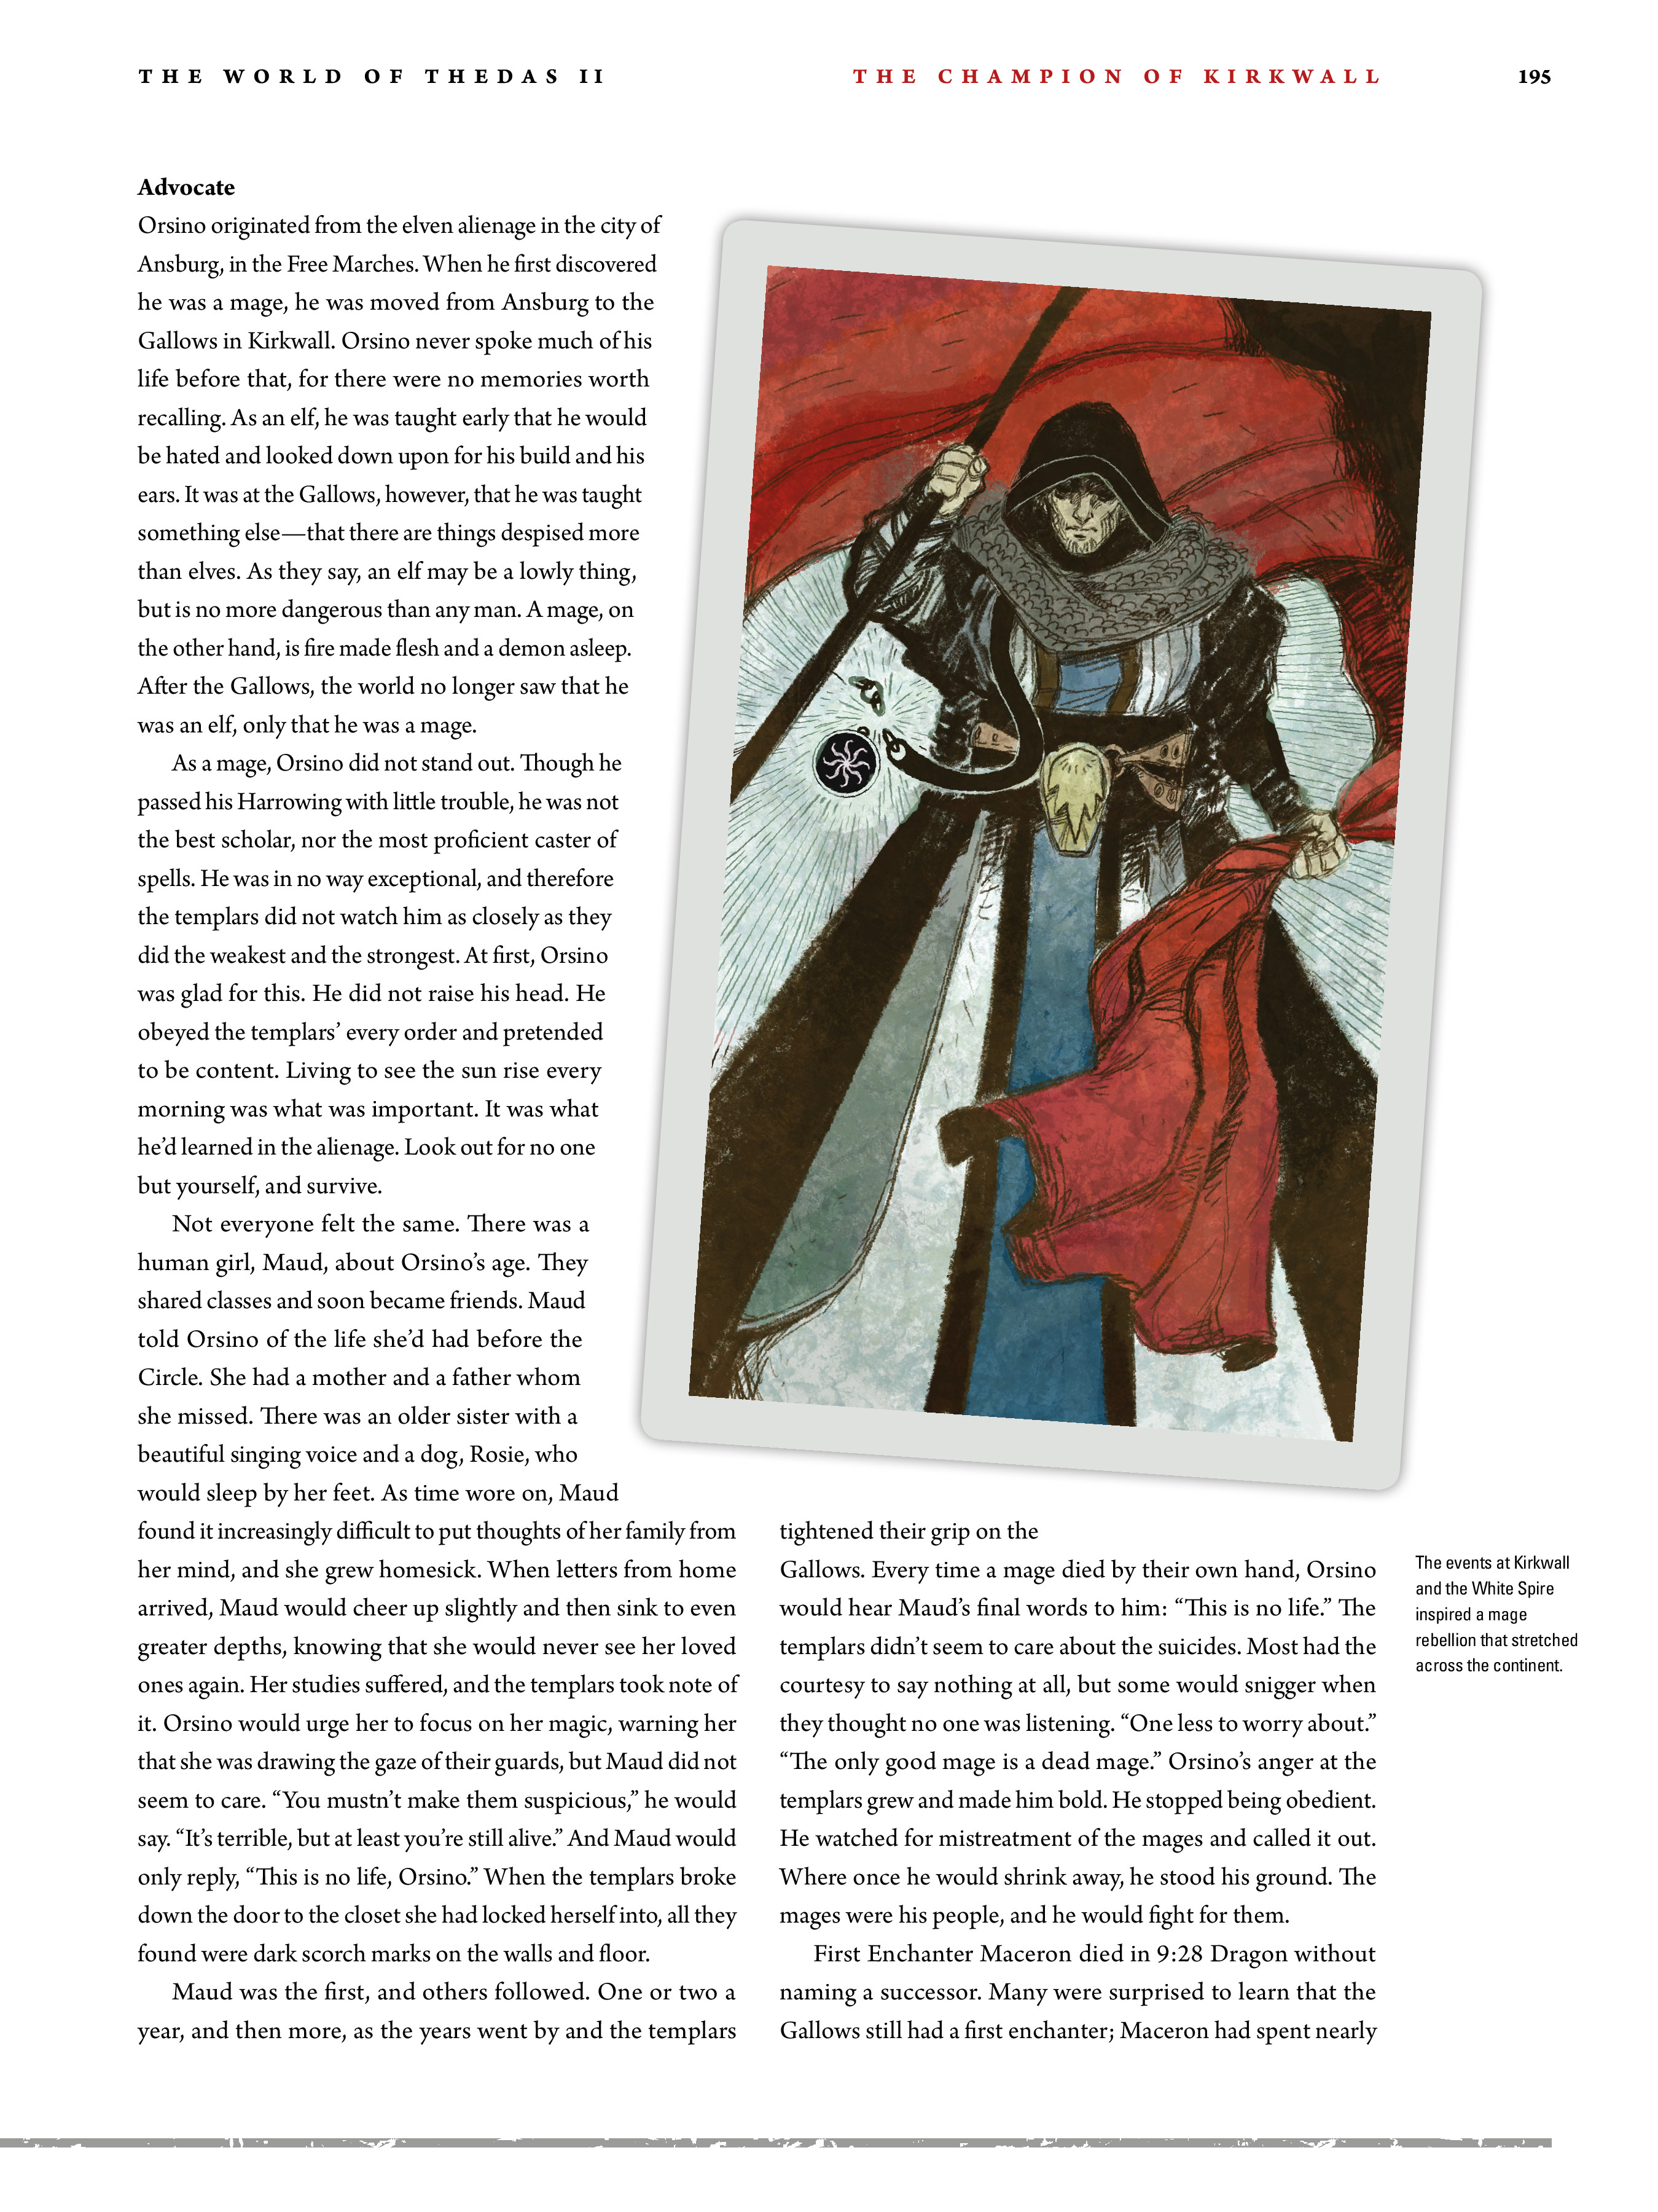 Read online Dragon Age: The World of Thedas comic -  Issue # TPB 2 - 190